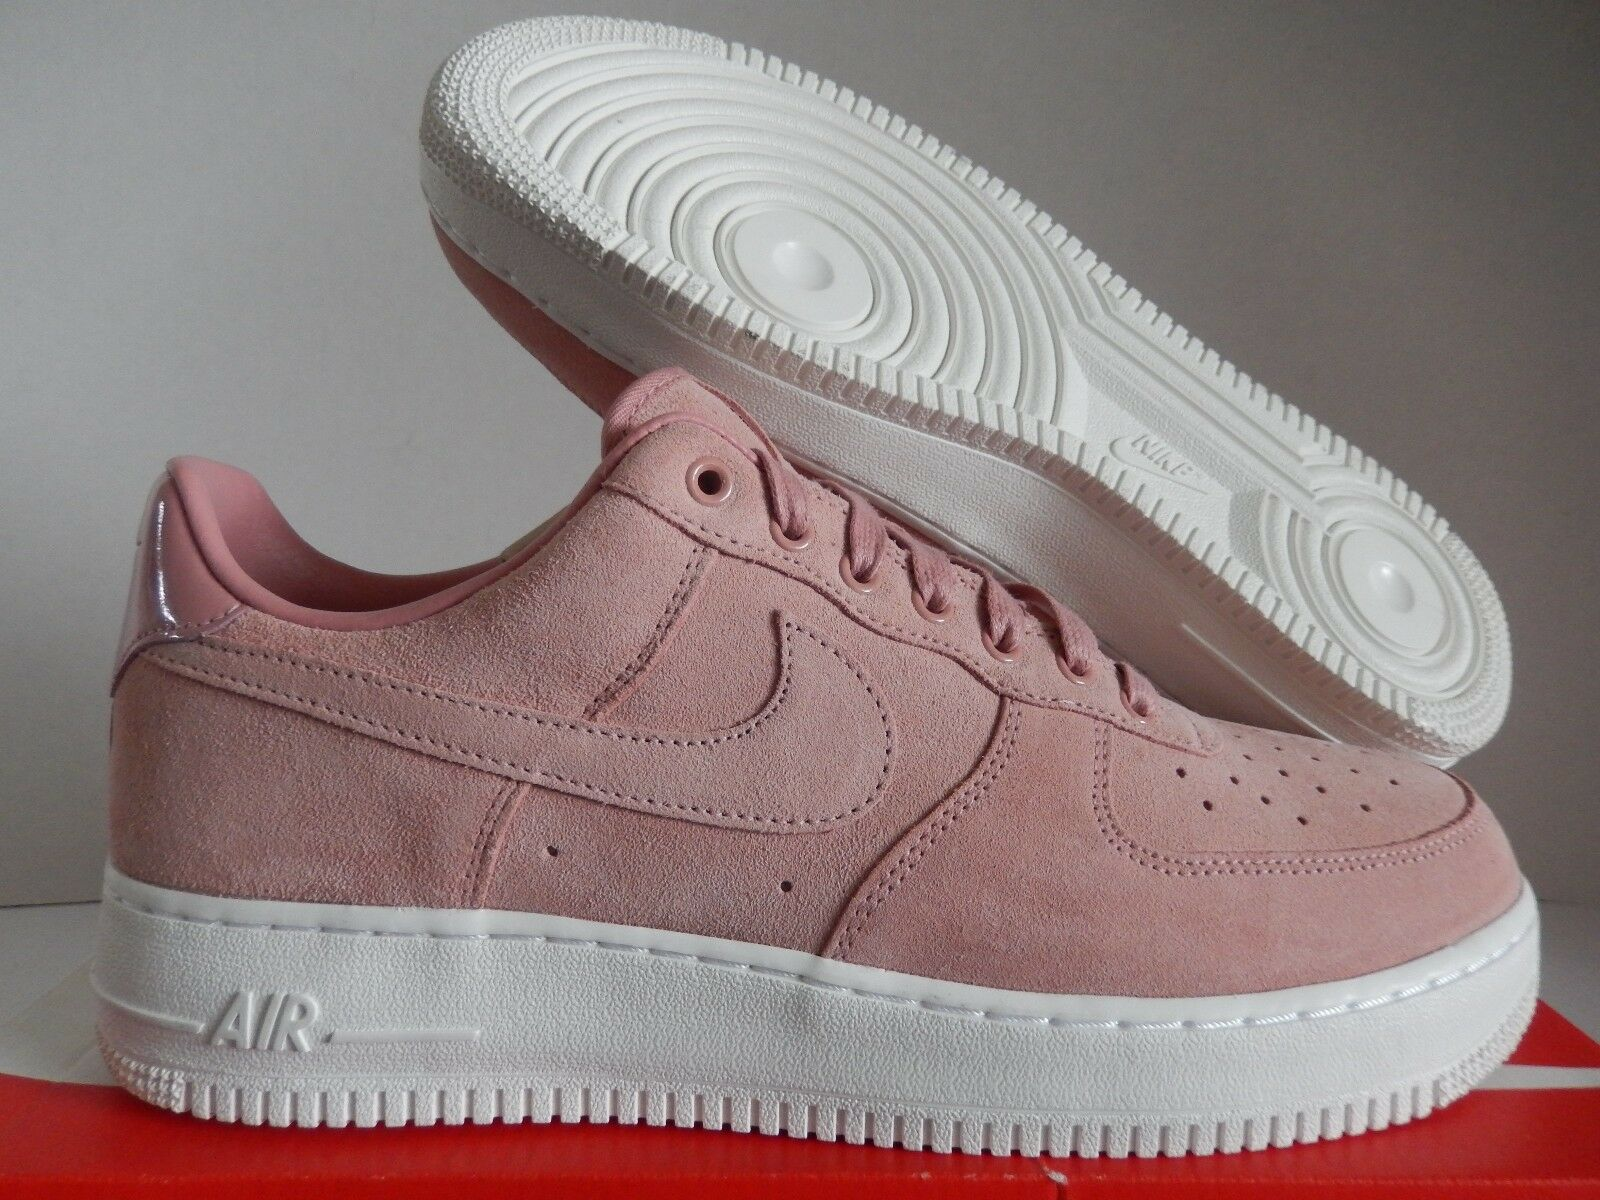 NIKE AIR FORCE 1 LOW PREMIUM ID PARTICLE BEIGE PINK-WHITE SZ 11 [AQ3661-991]